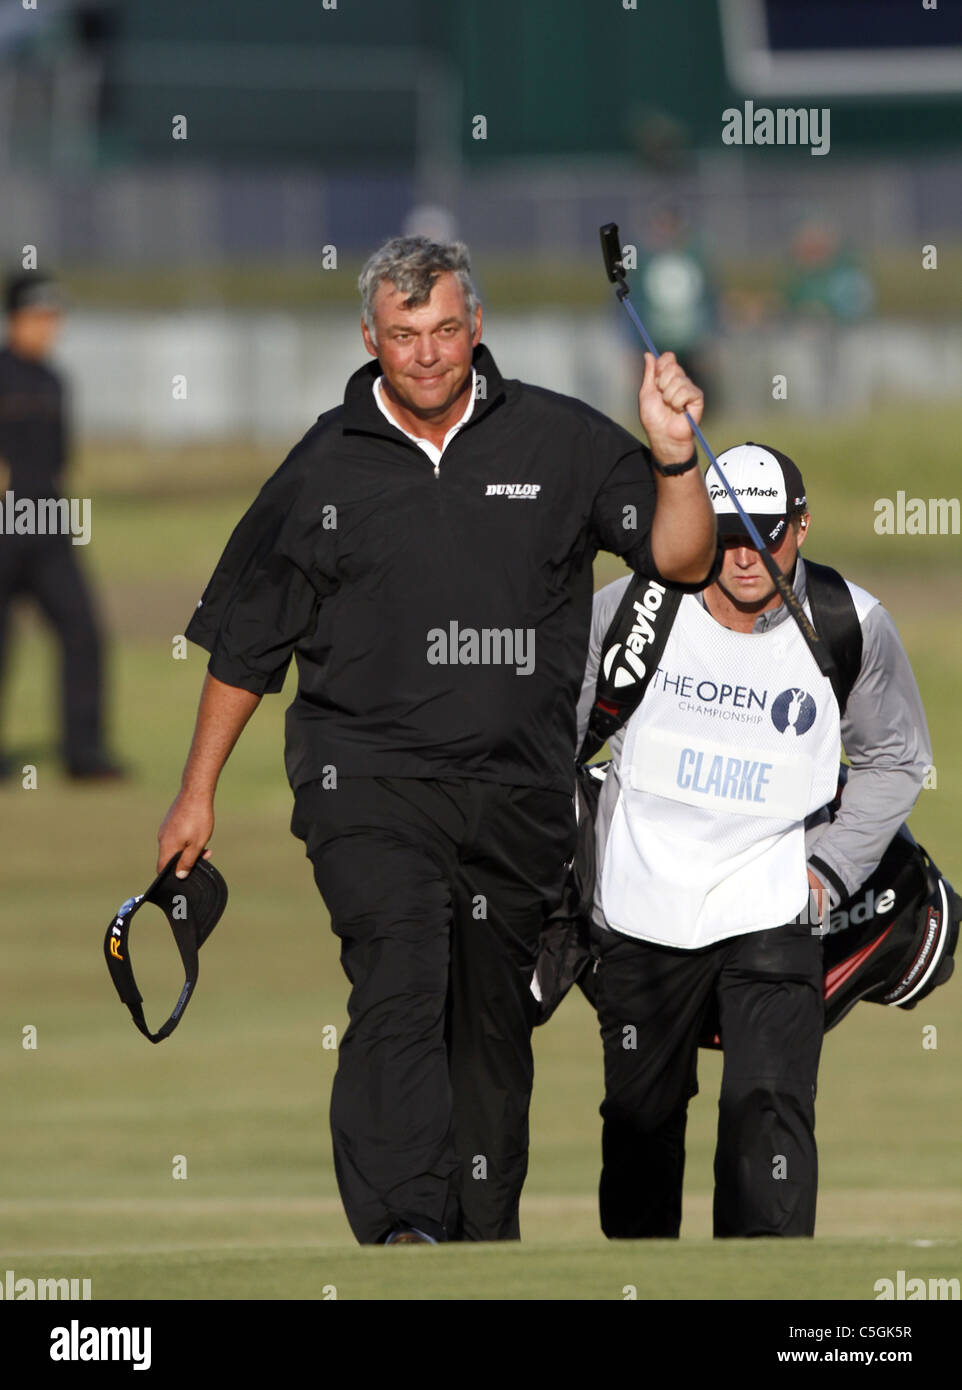 DARREN CLARKE ACKNOWLEDGES THE THE OPEN CHAMPIONSHIP ROYAL ST.GEORGE'S SANDWICH KENT ENGLAND 16 July 2011 - Stock Image